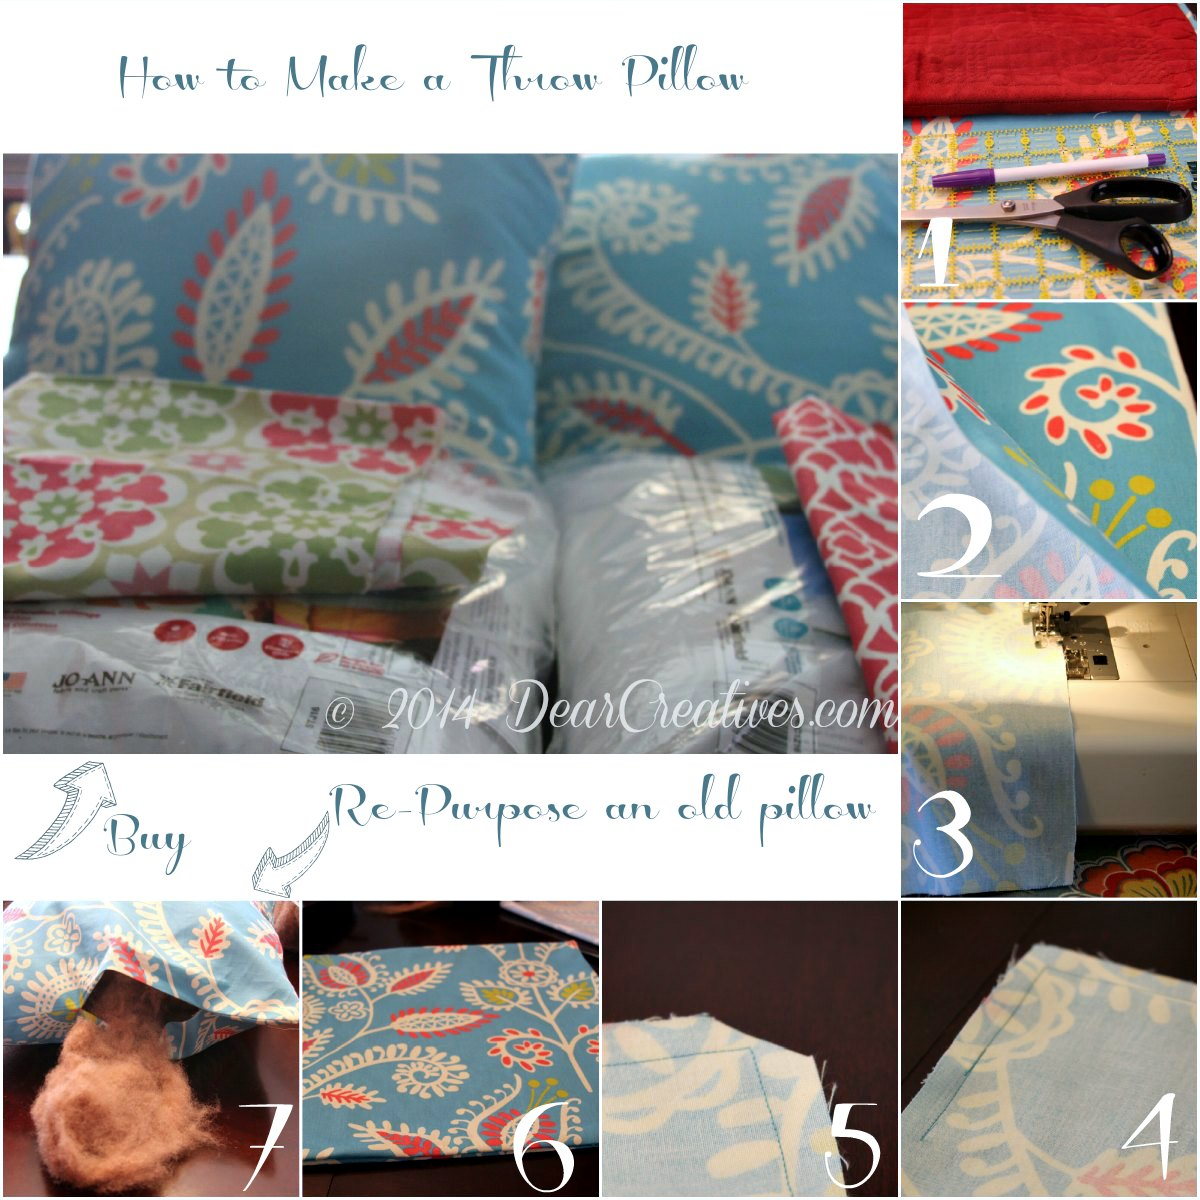 How to Make a Pillow_Step by step photos_